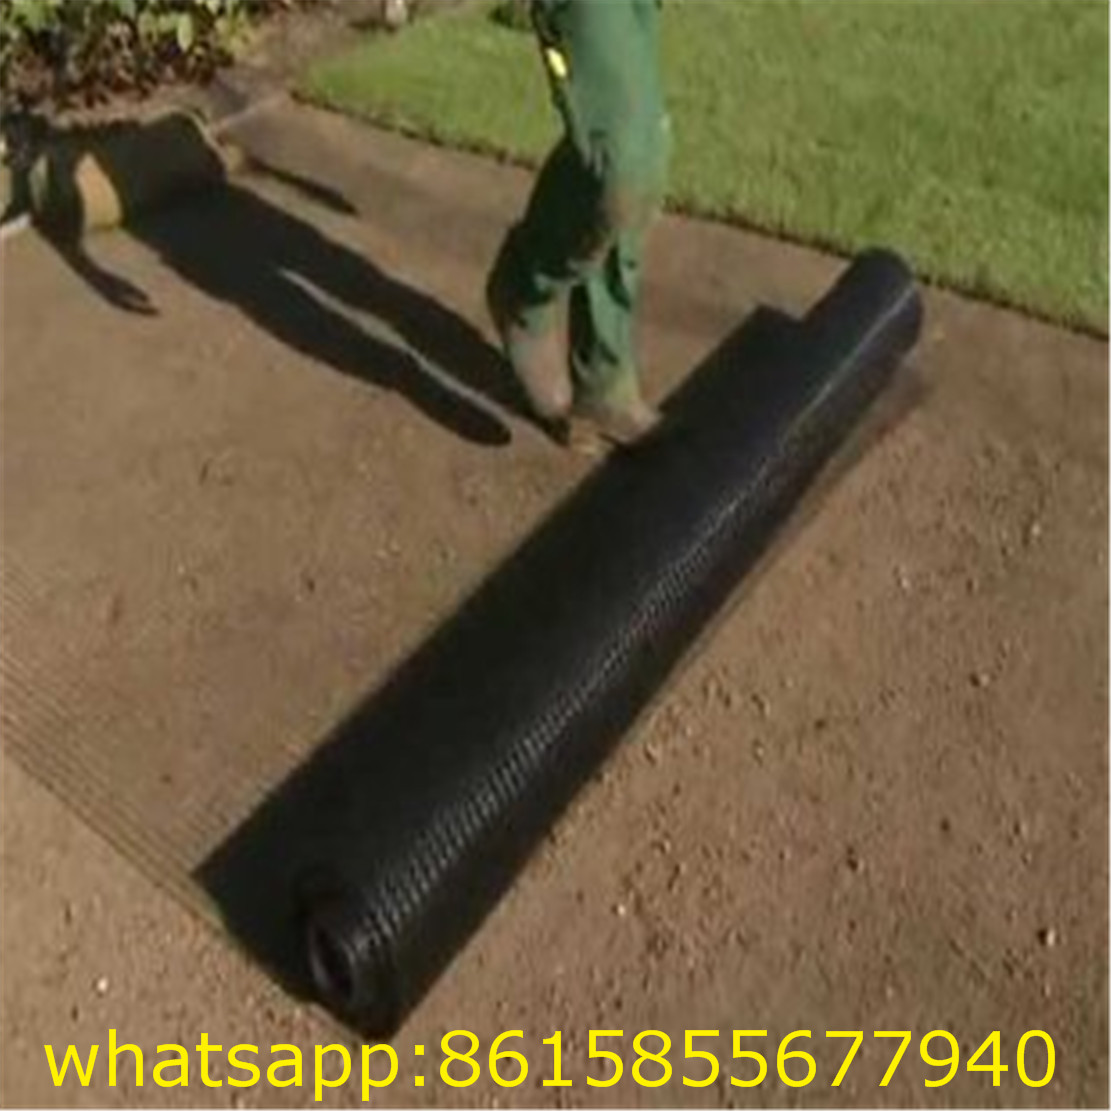 Anti Mole Netting Agricultural HDPE for Fruit Trees